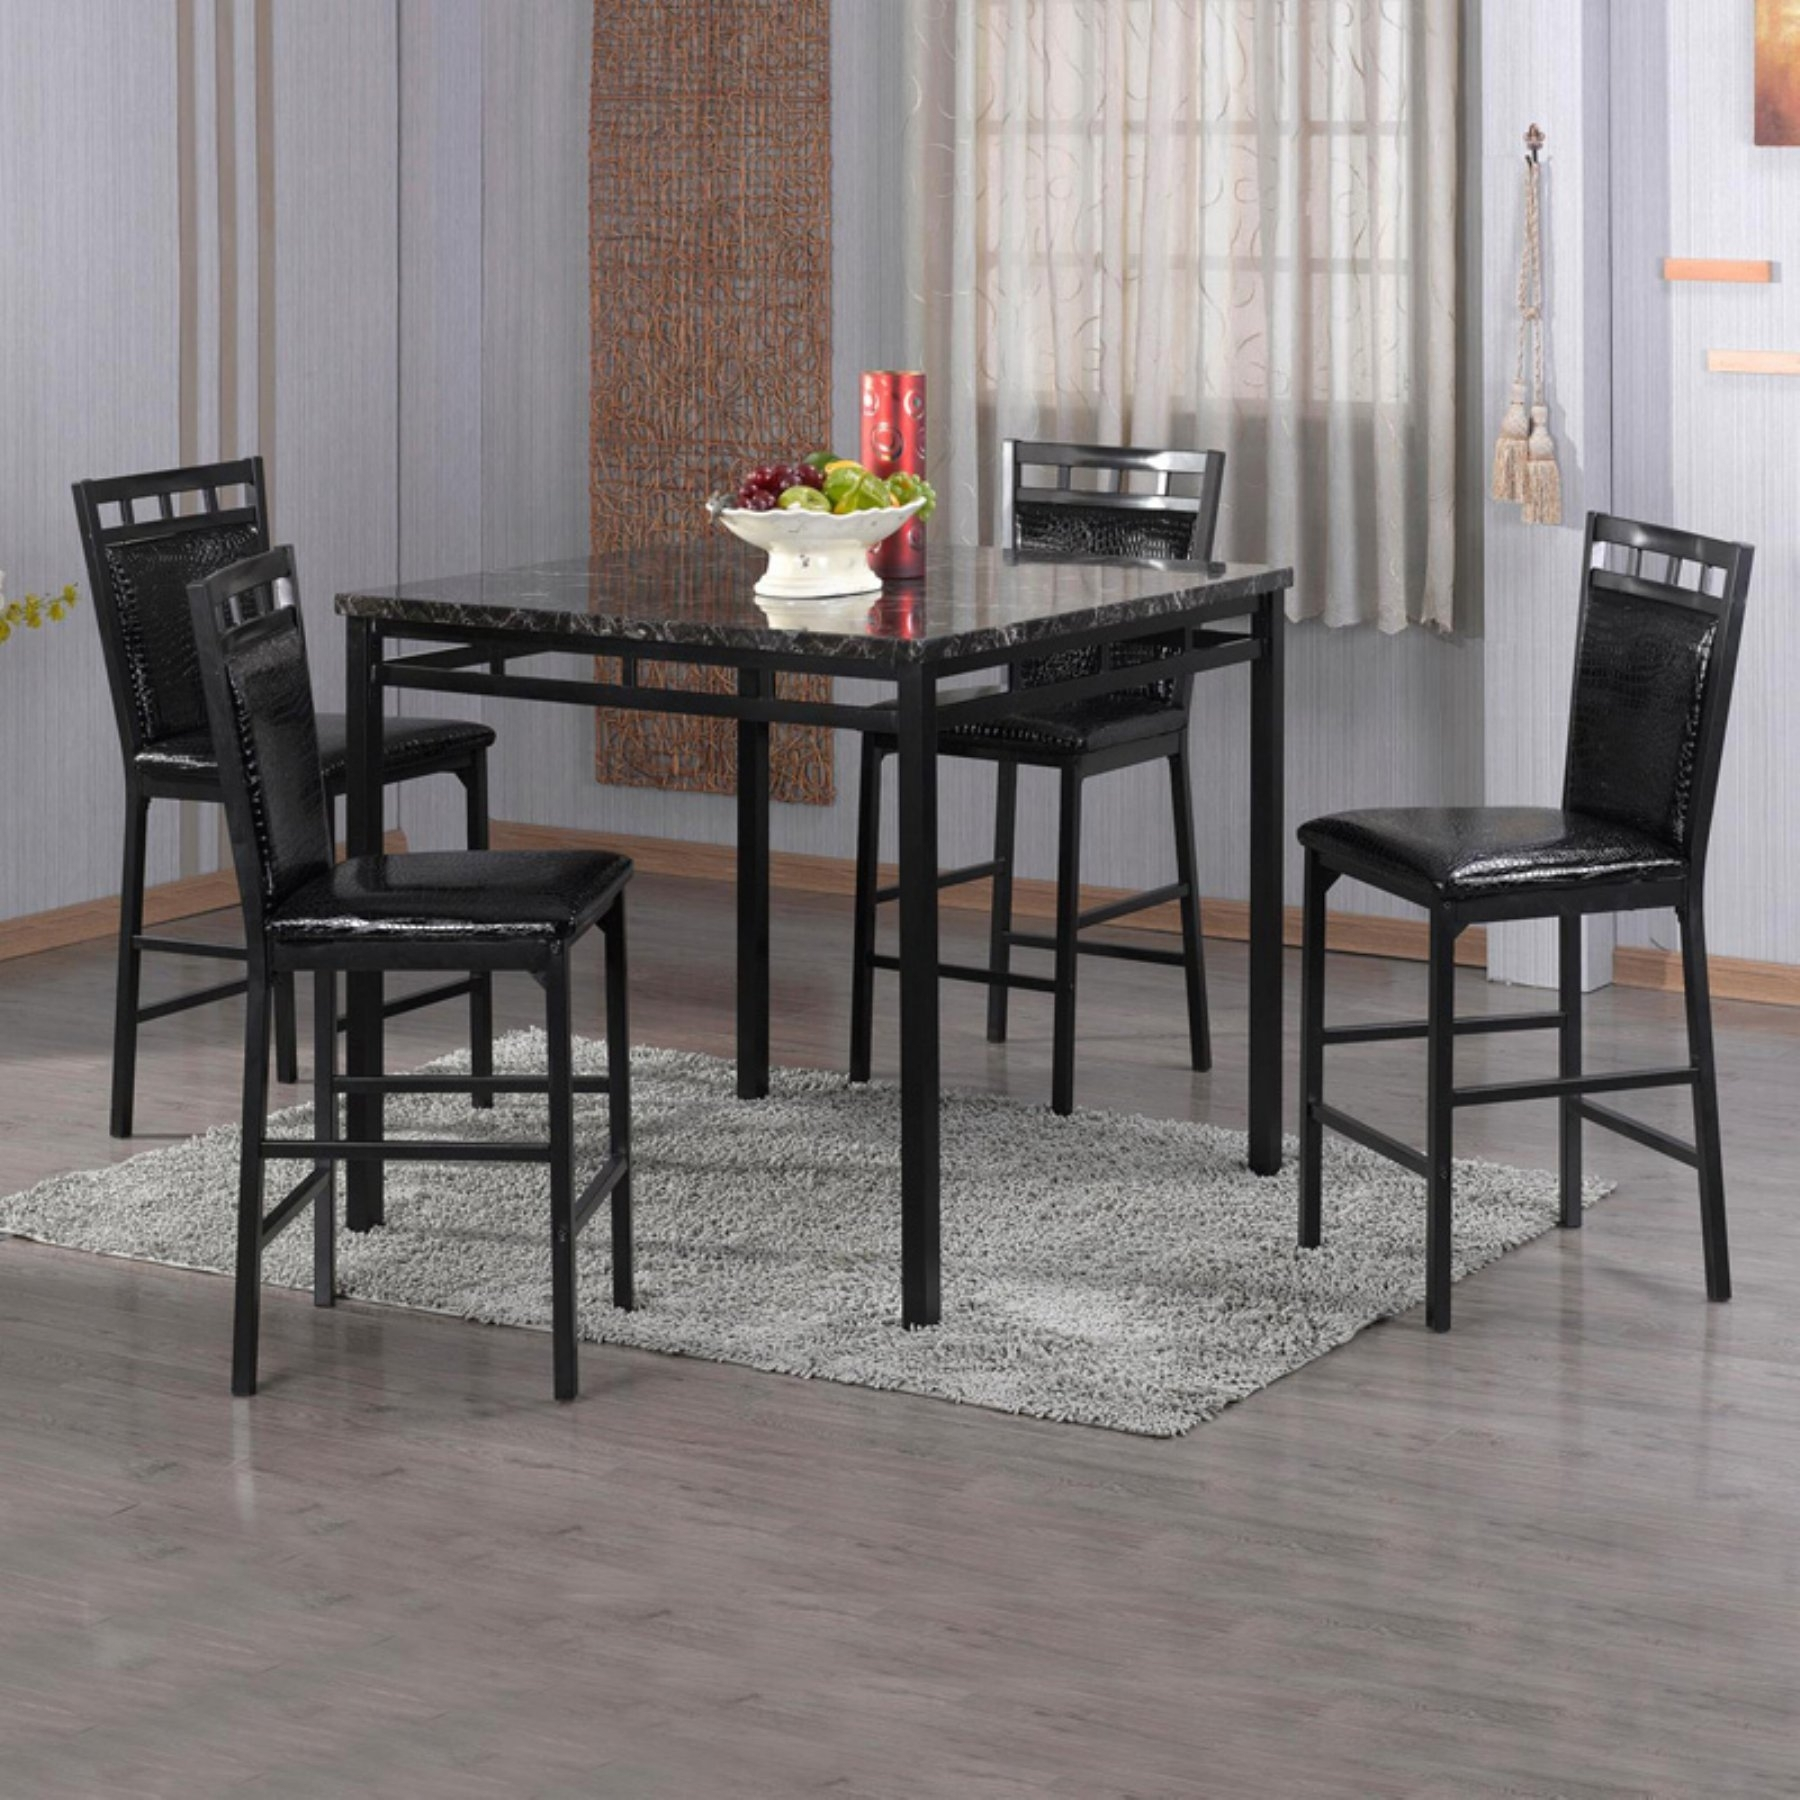 Home Source Industries 5 Piece Counter Height Dining Table Set In Pertaining To Current Market 6 Piece Dining Sets With Side Chairs (View 15 of 20)